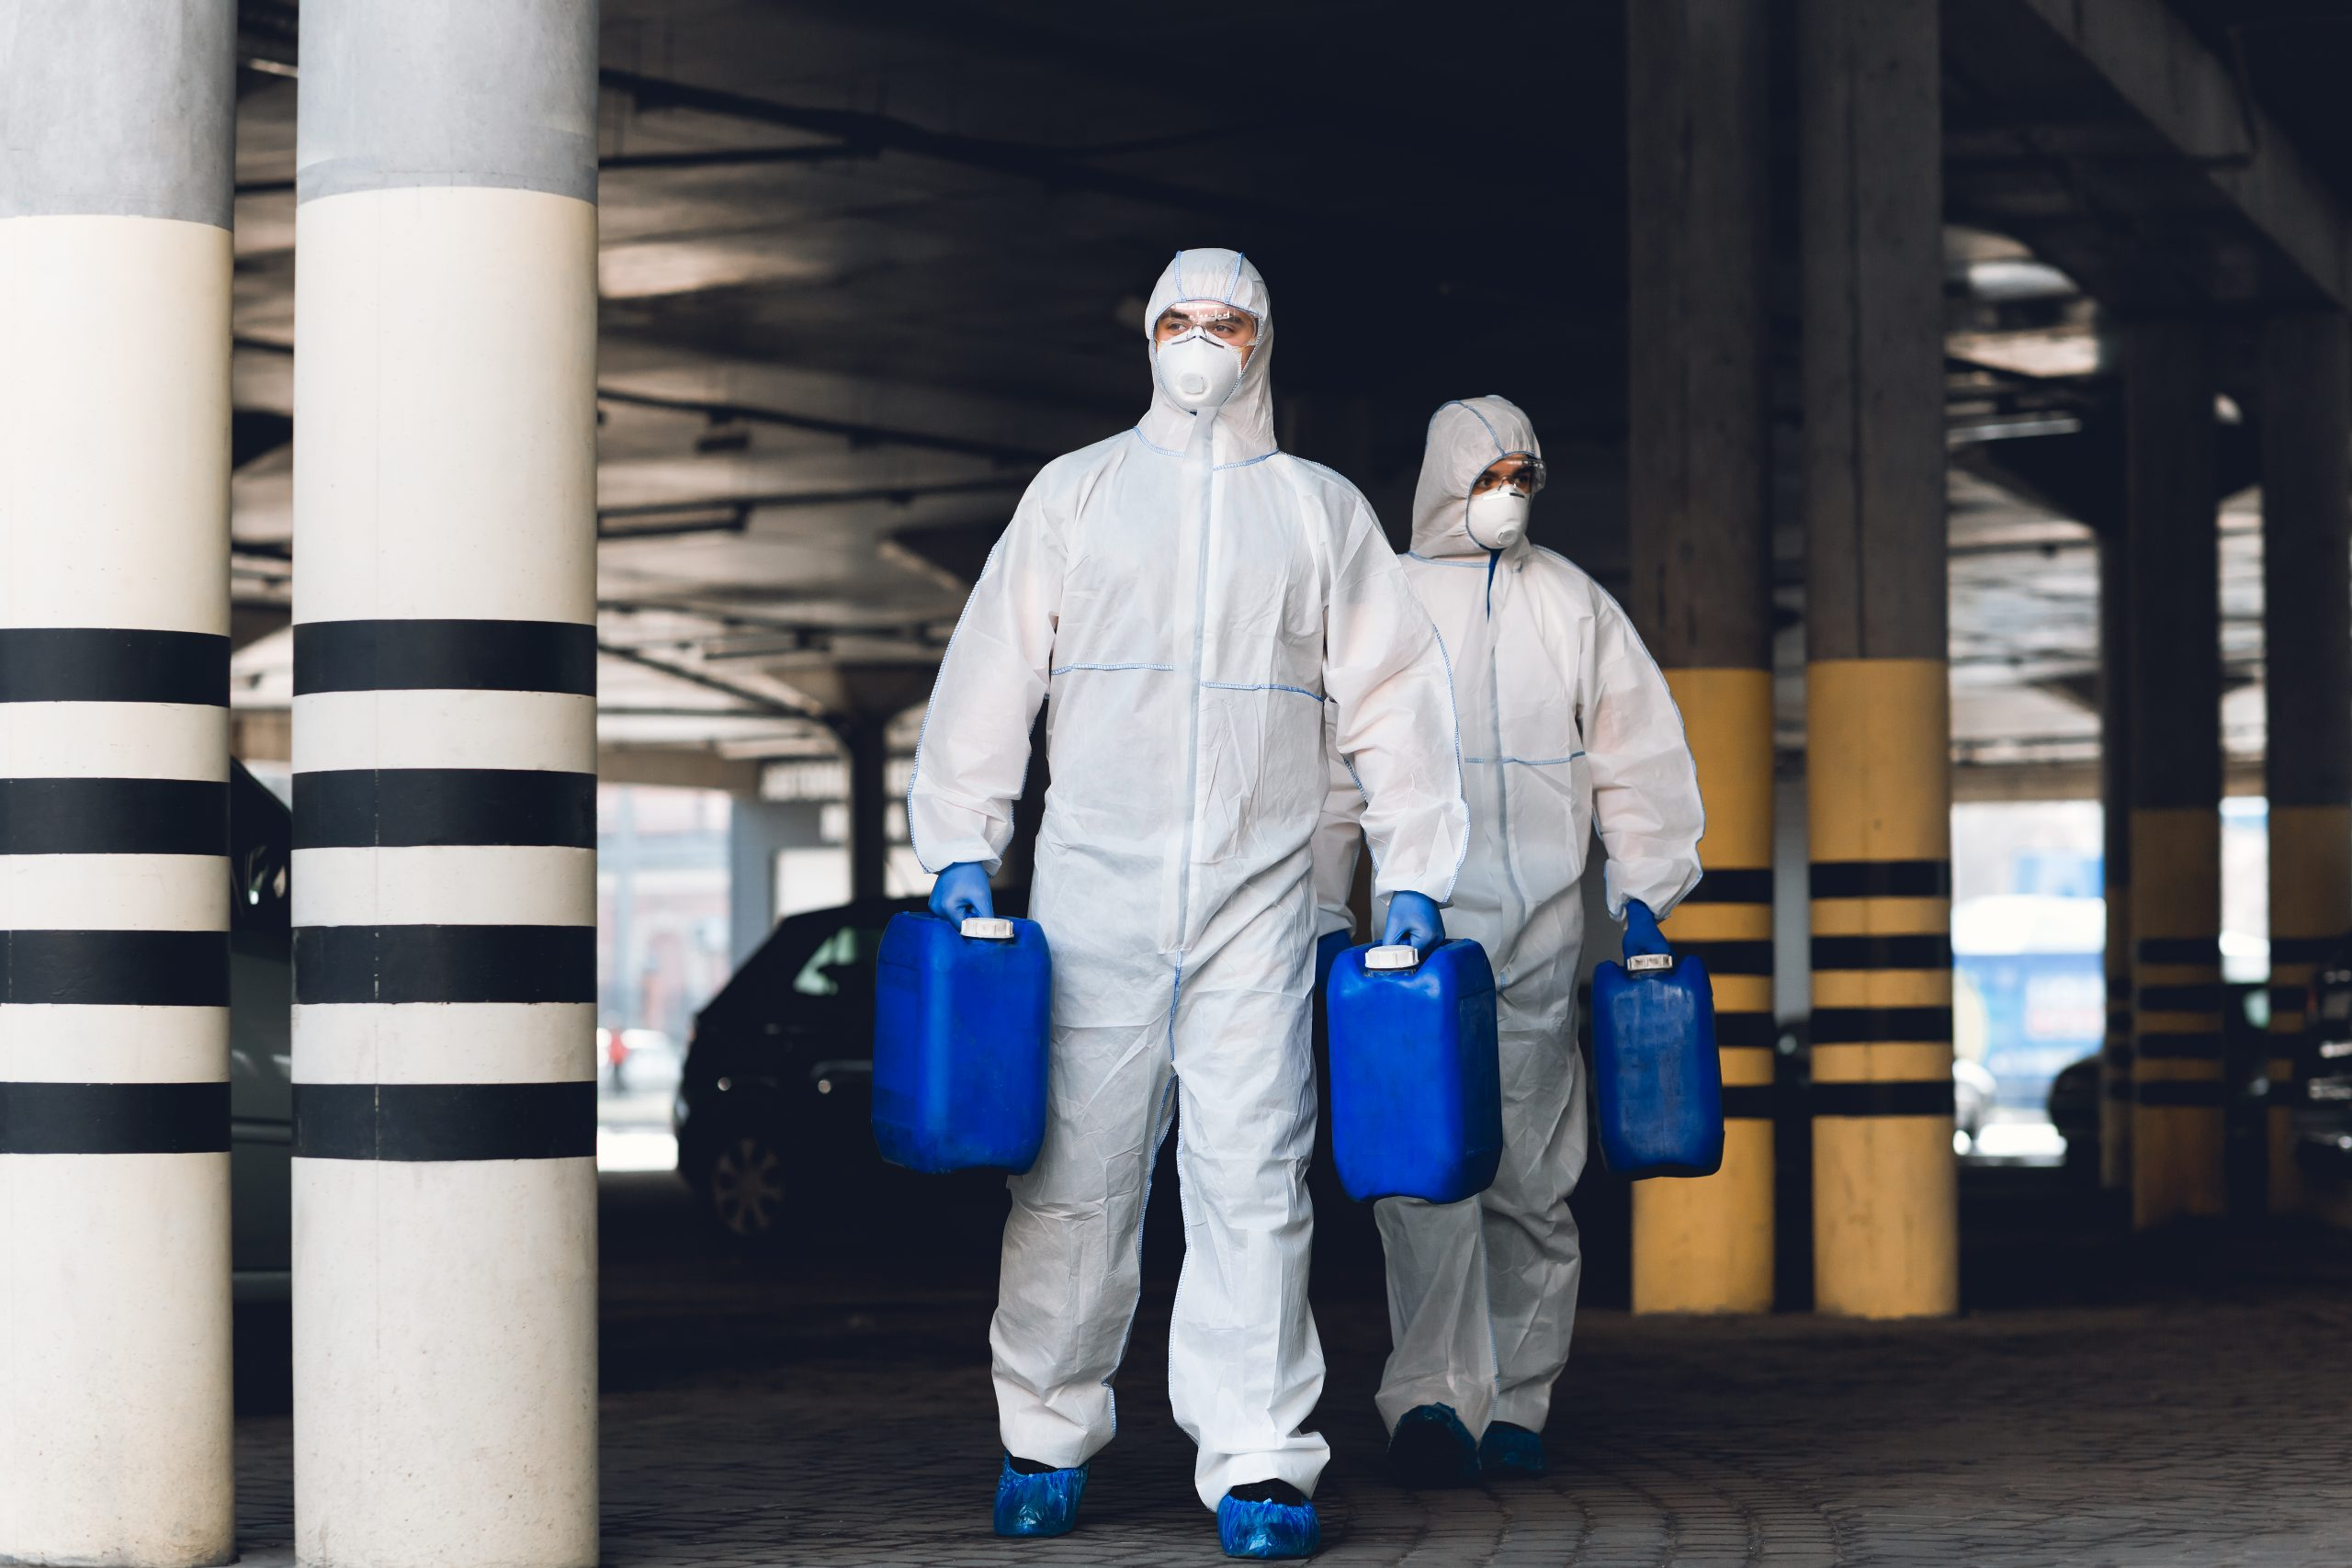 Disinfection and Sanitizing Services in Beaumont CA